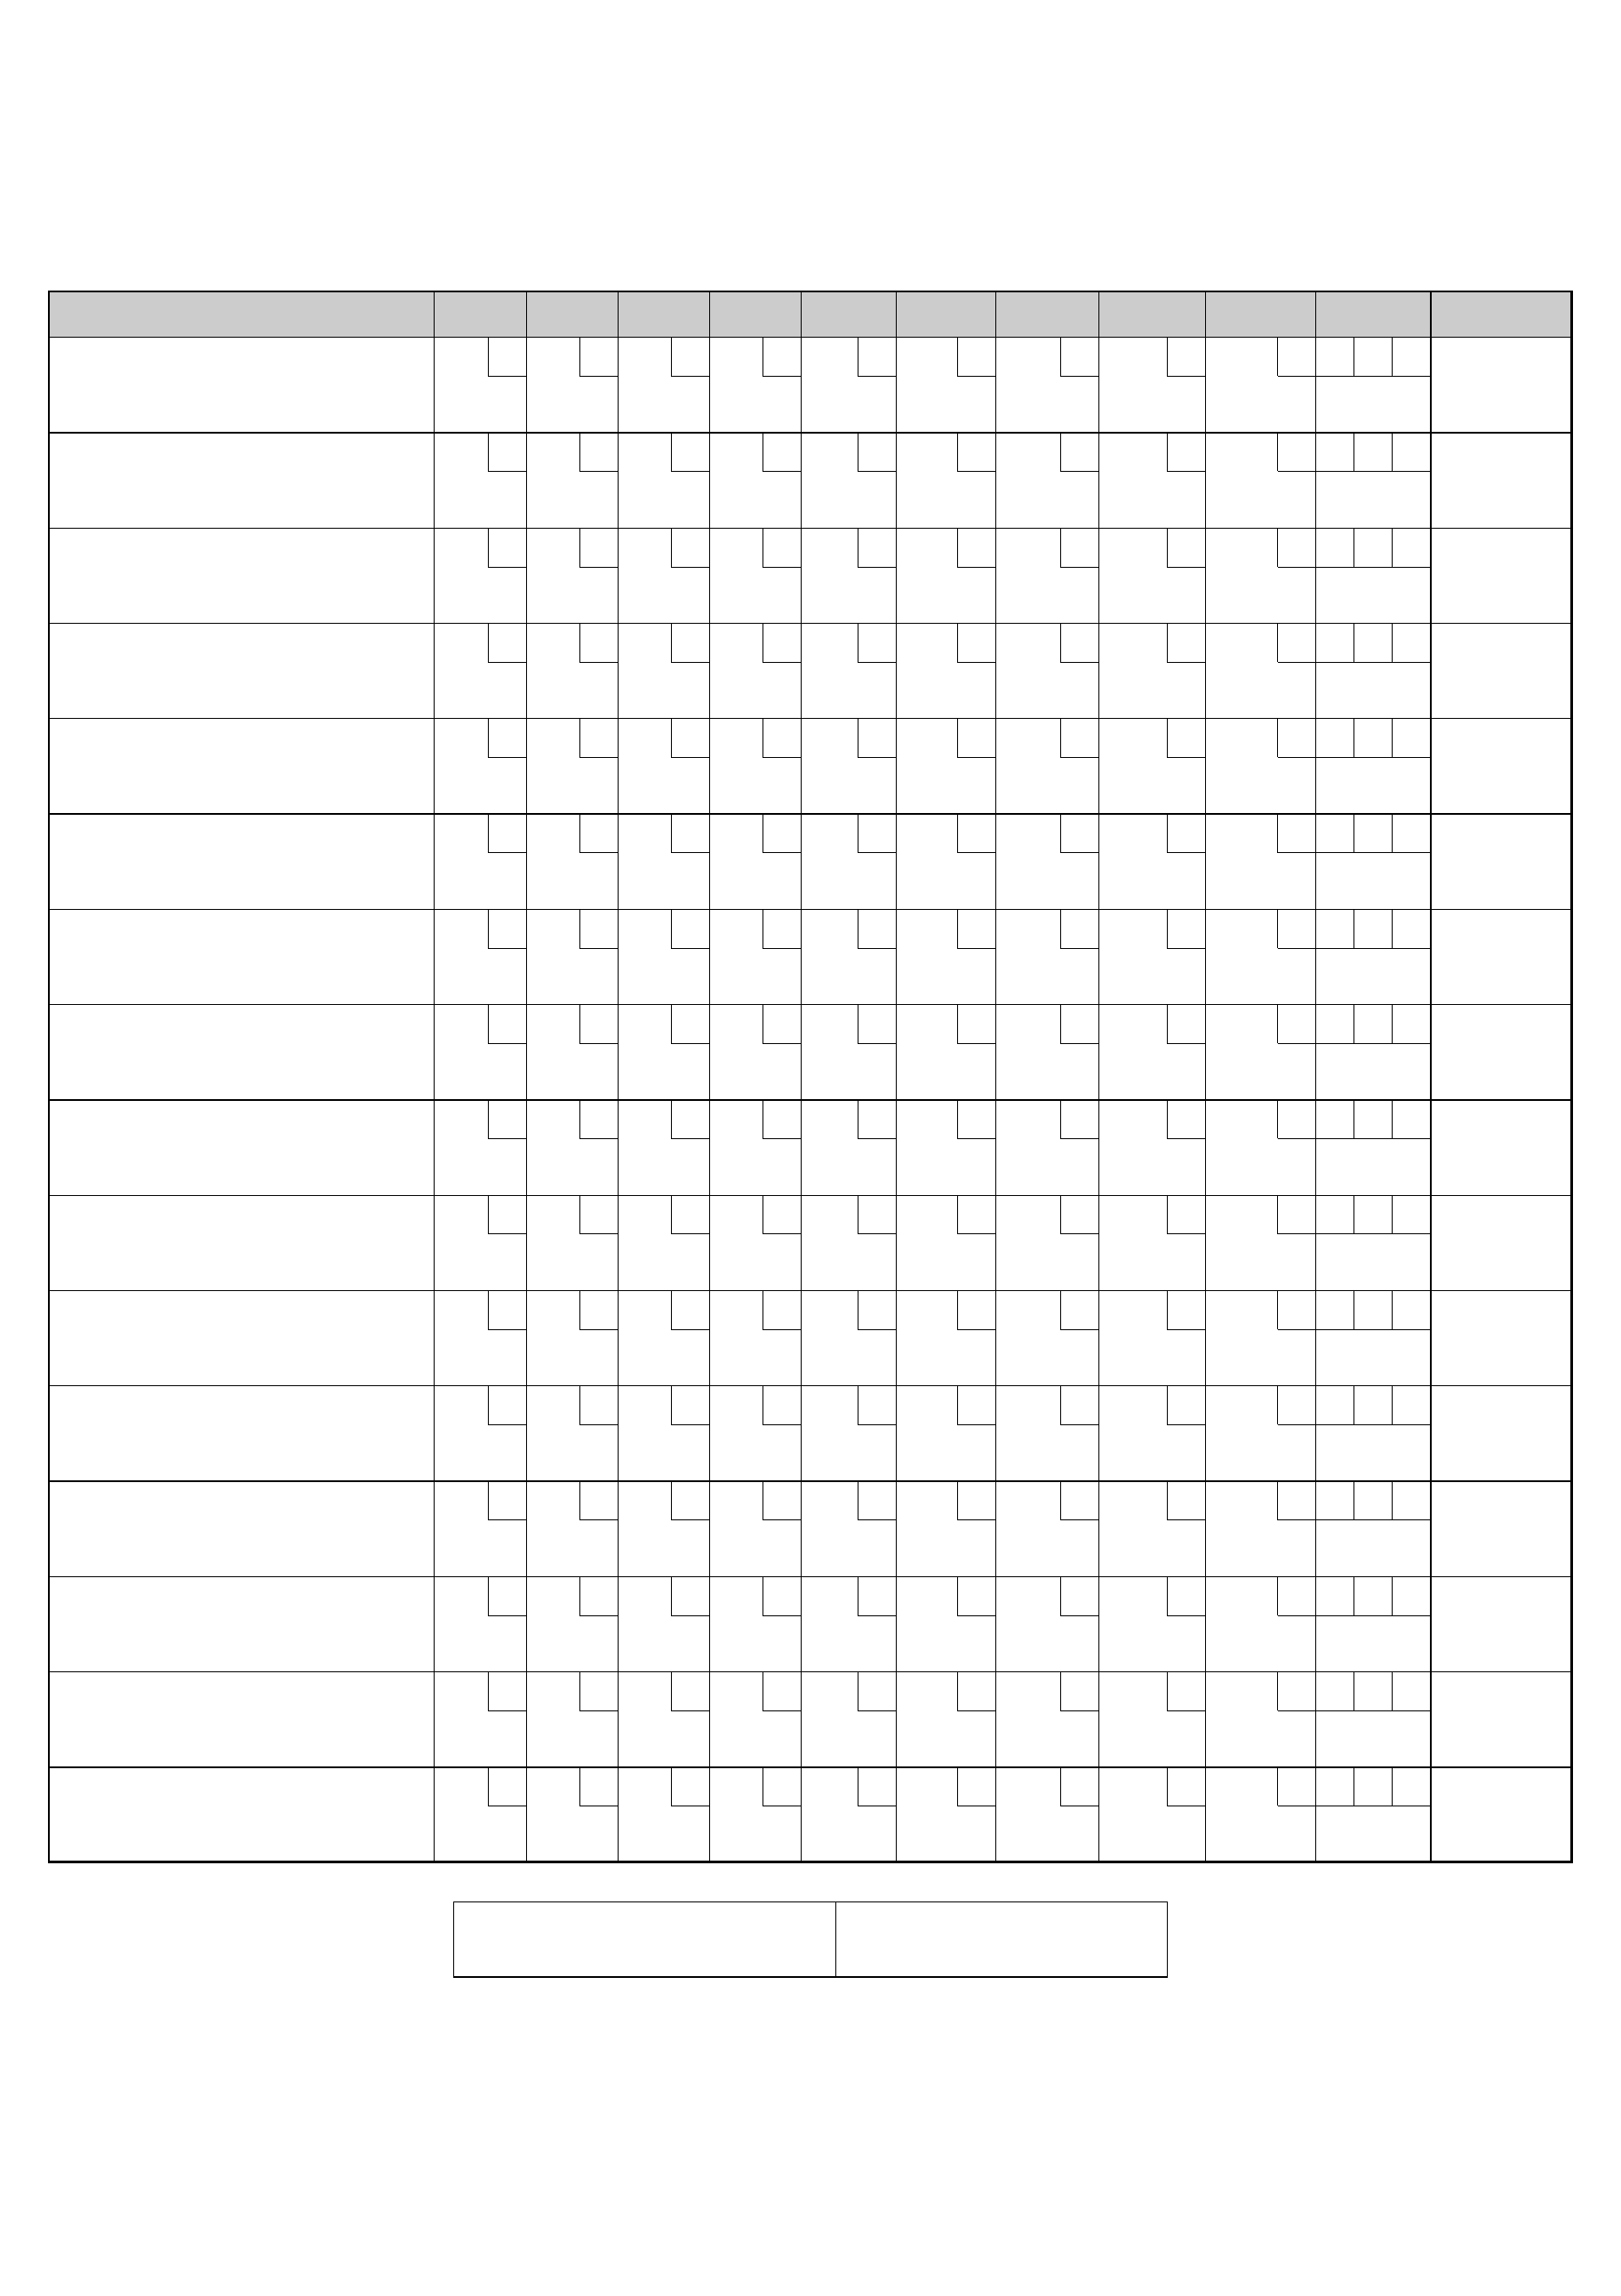 blank bowling score sheet free download